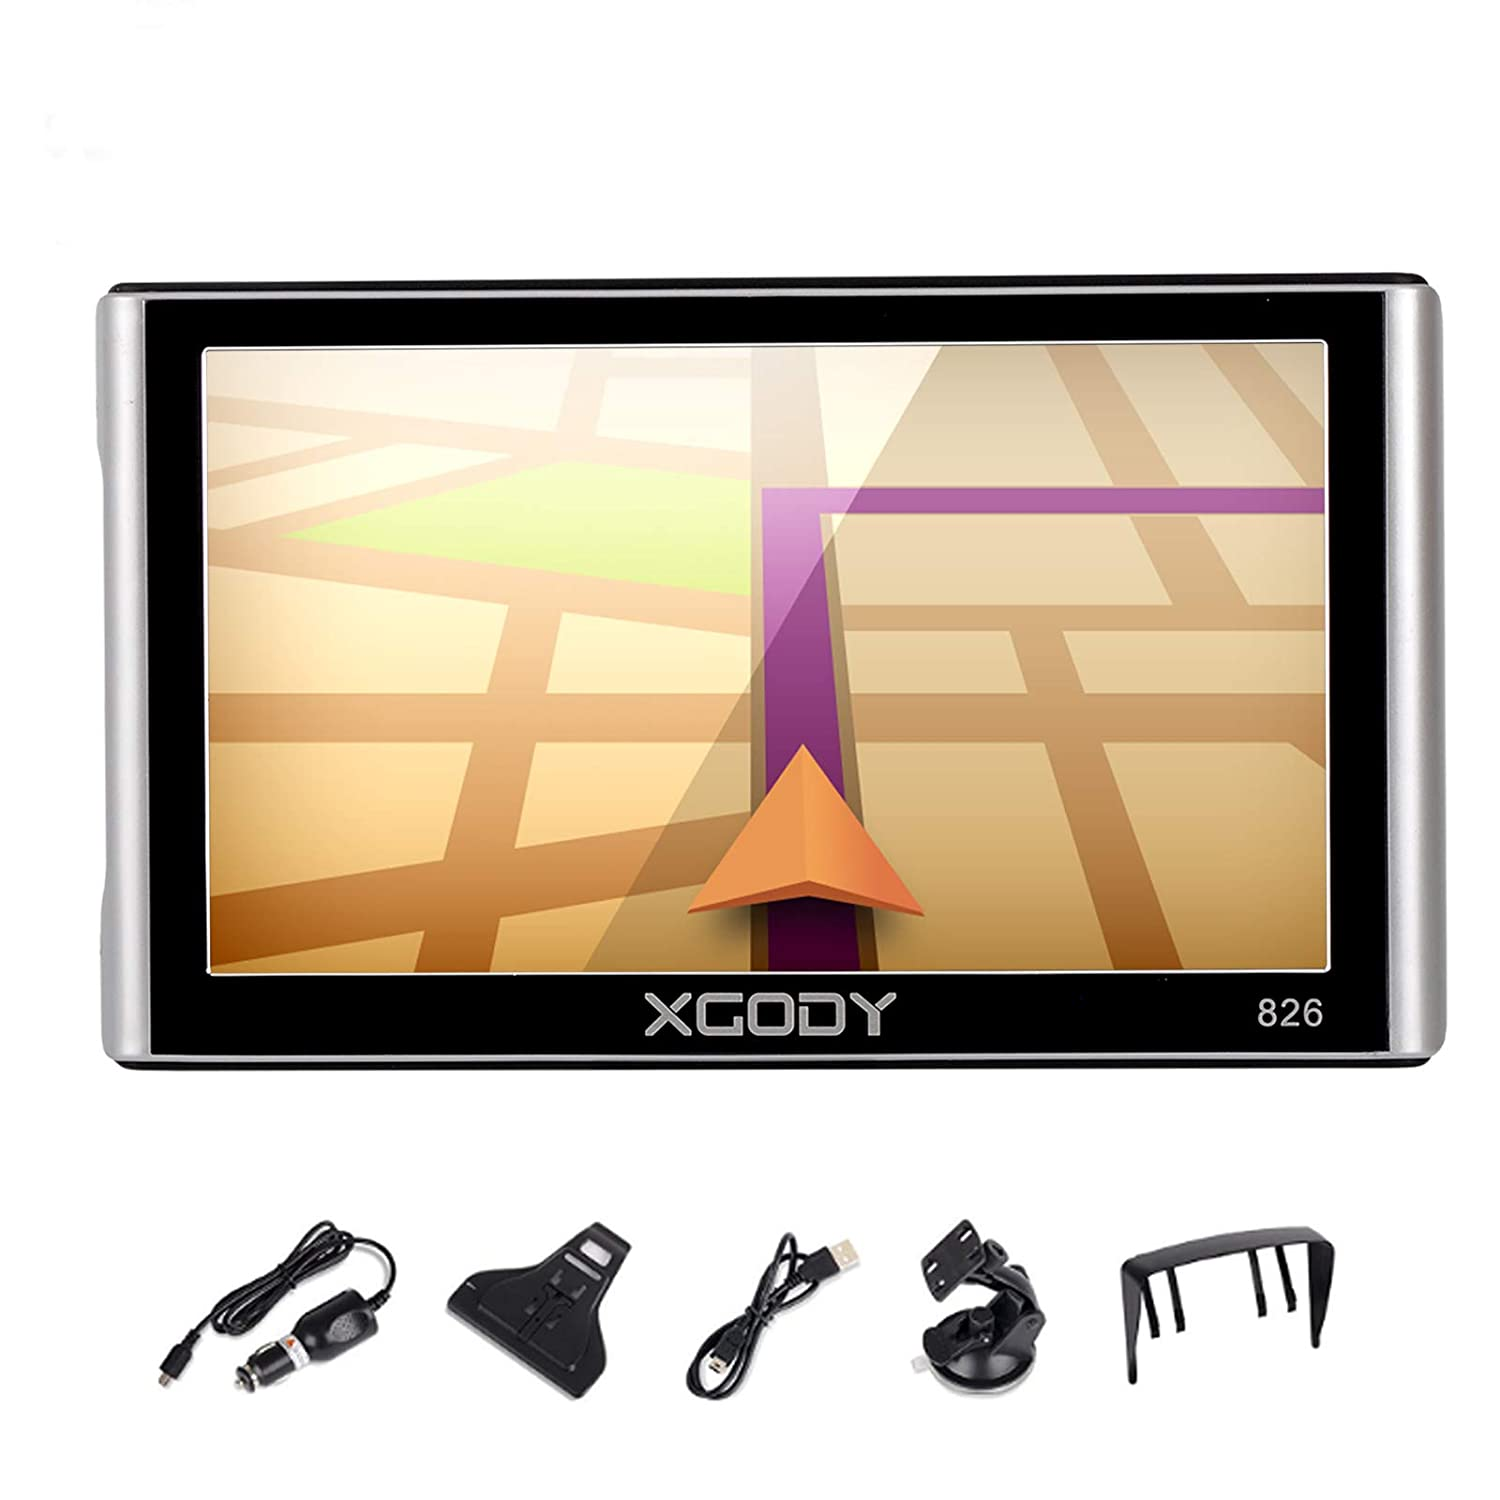 GPS Navigation for Car, Xgody 7 Inch Capacitive Screen 8GB US and Canada Lifetime Maps Update Spoken Turn-to-Turn Truck Vehicle GPS Navigator System for Cars (826BT+YM) Shenzhen Xin Sheng Shang Technology Co. Ltd